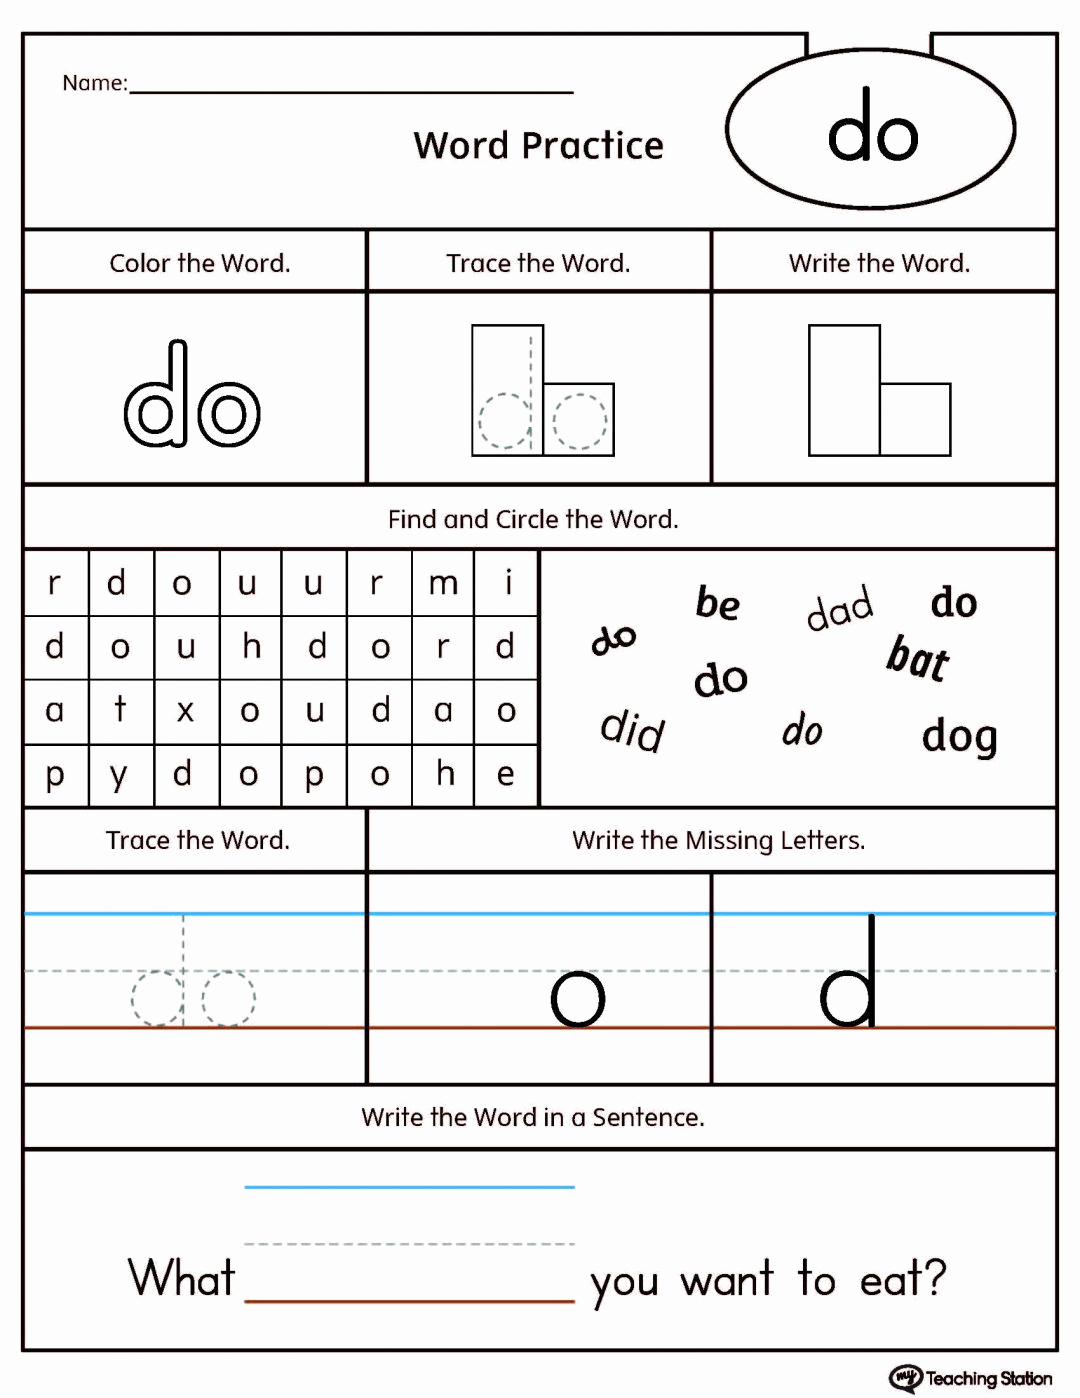 Free Printable Name Tracer Worksheets Free Printable Kindergarten - Free Printable Name Tracing